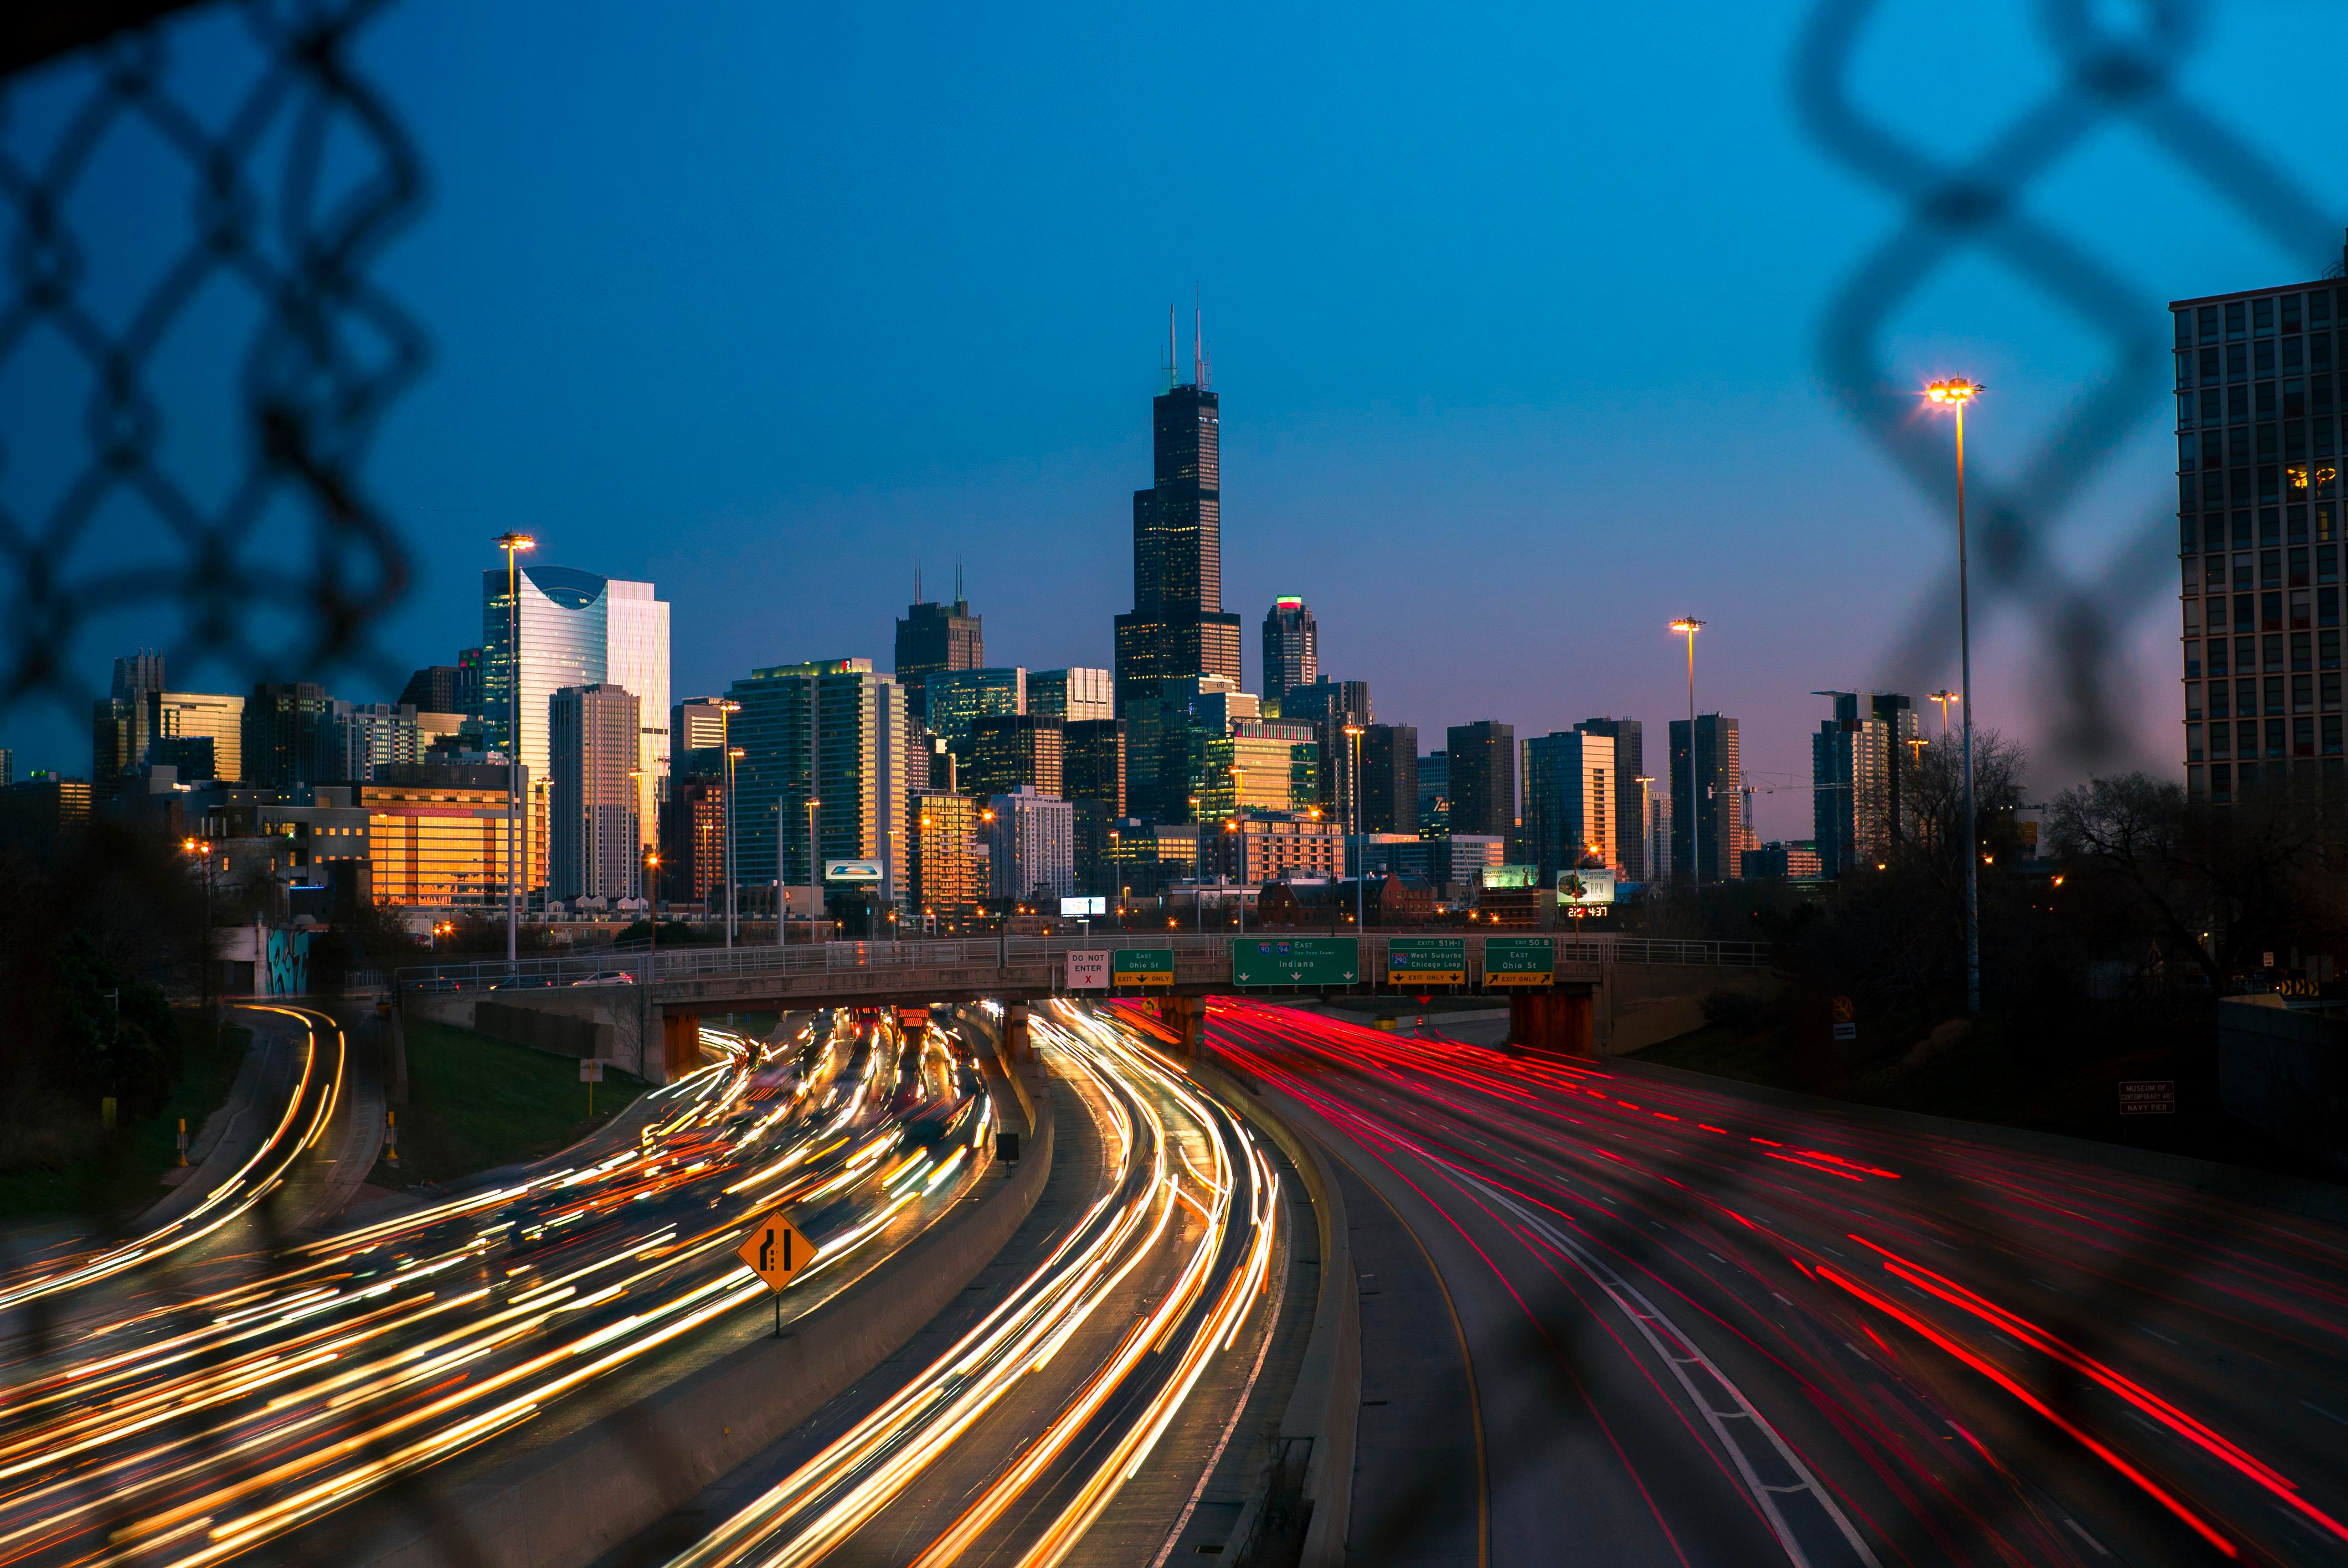 A time-elapsed photo from a bridge overlooking the Kennedy Expressway in Chicago at night.